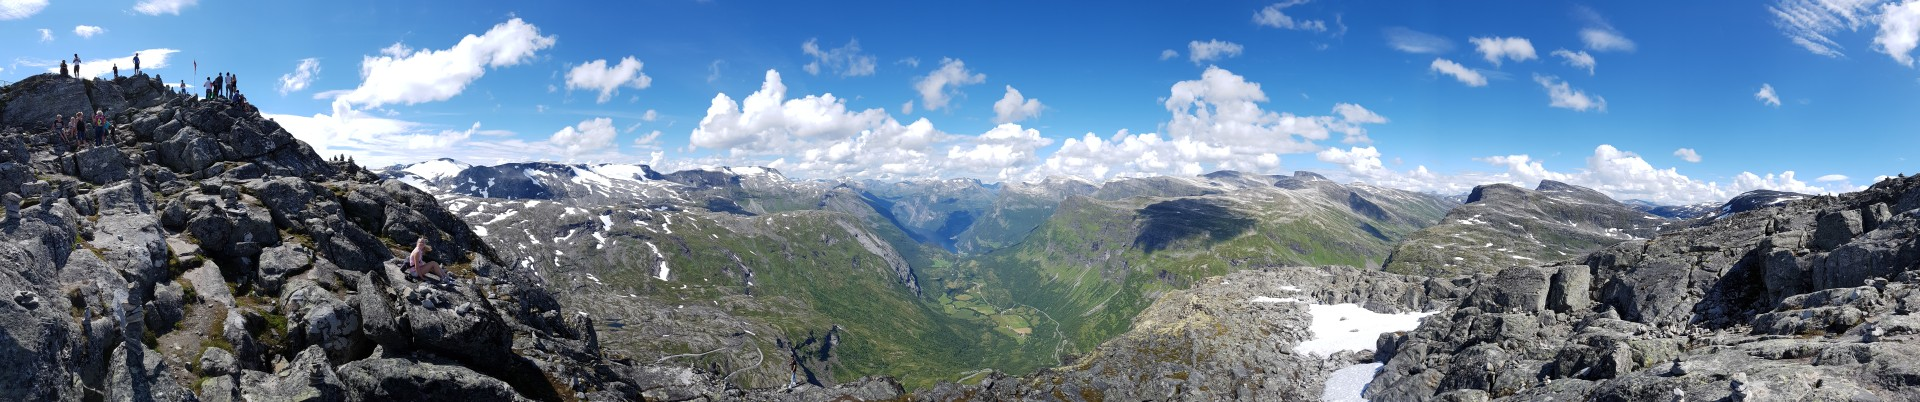 2016-07-24_13-35-53_Norge_20160724_133555